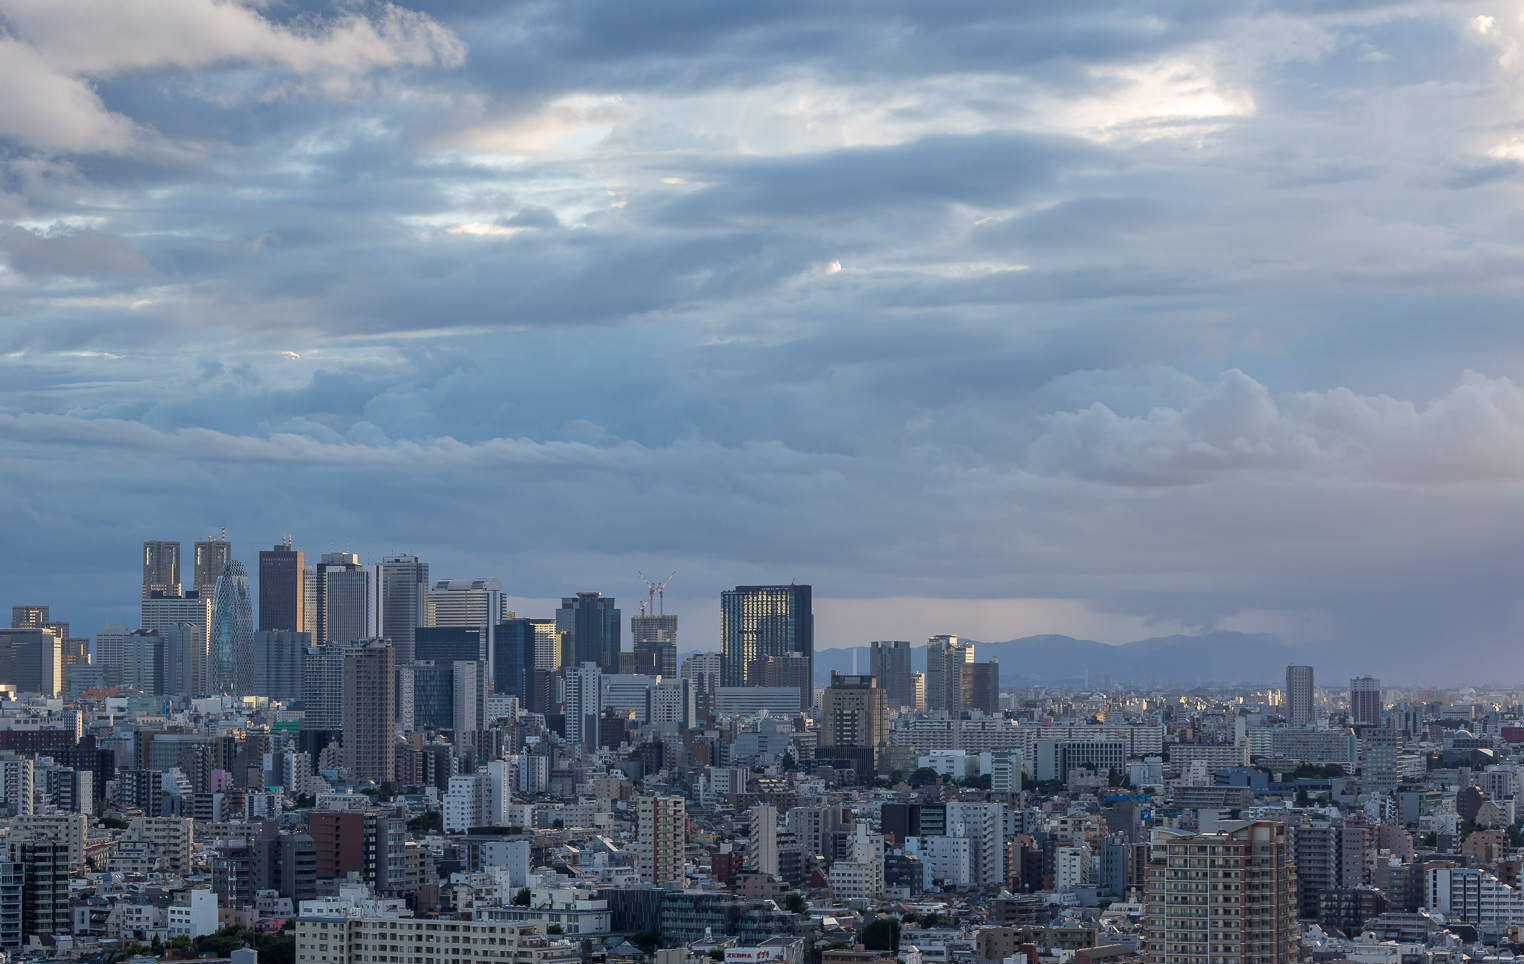 Japan's Vegetable Prices up 70% on the back of Tokyo's